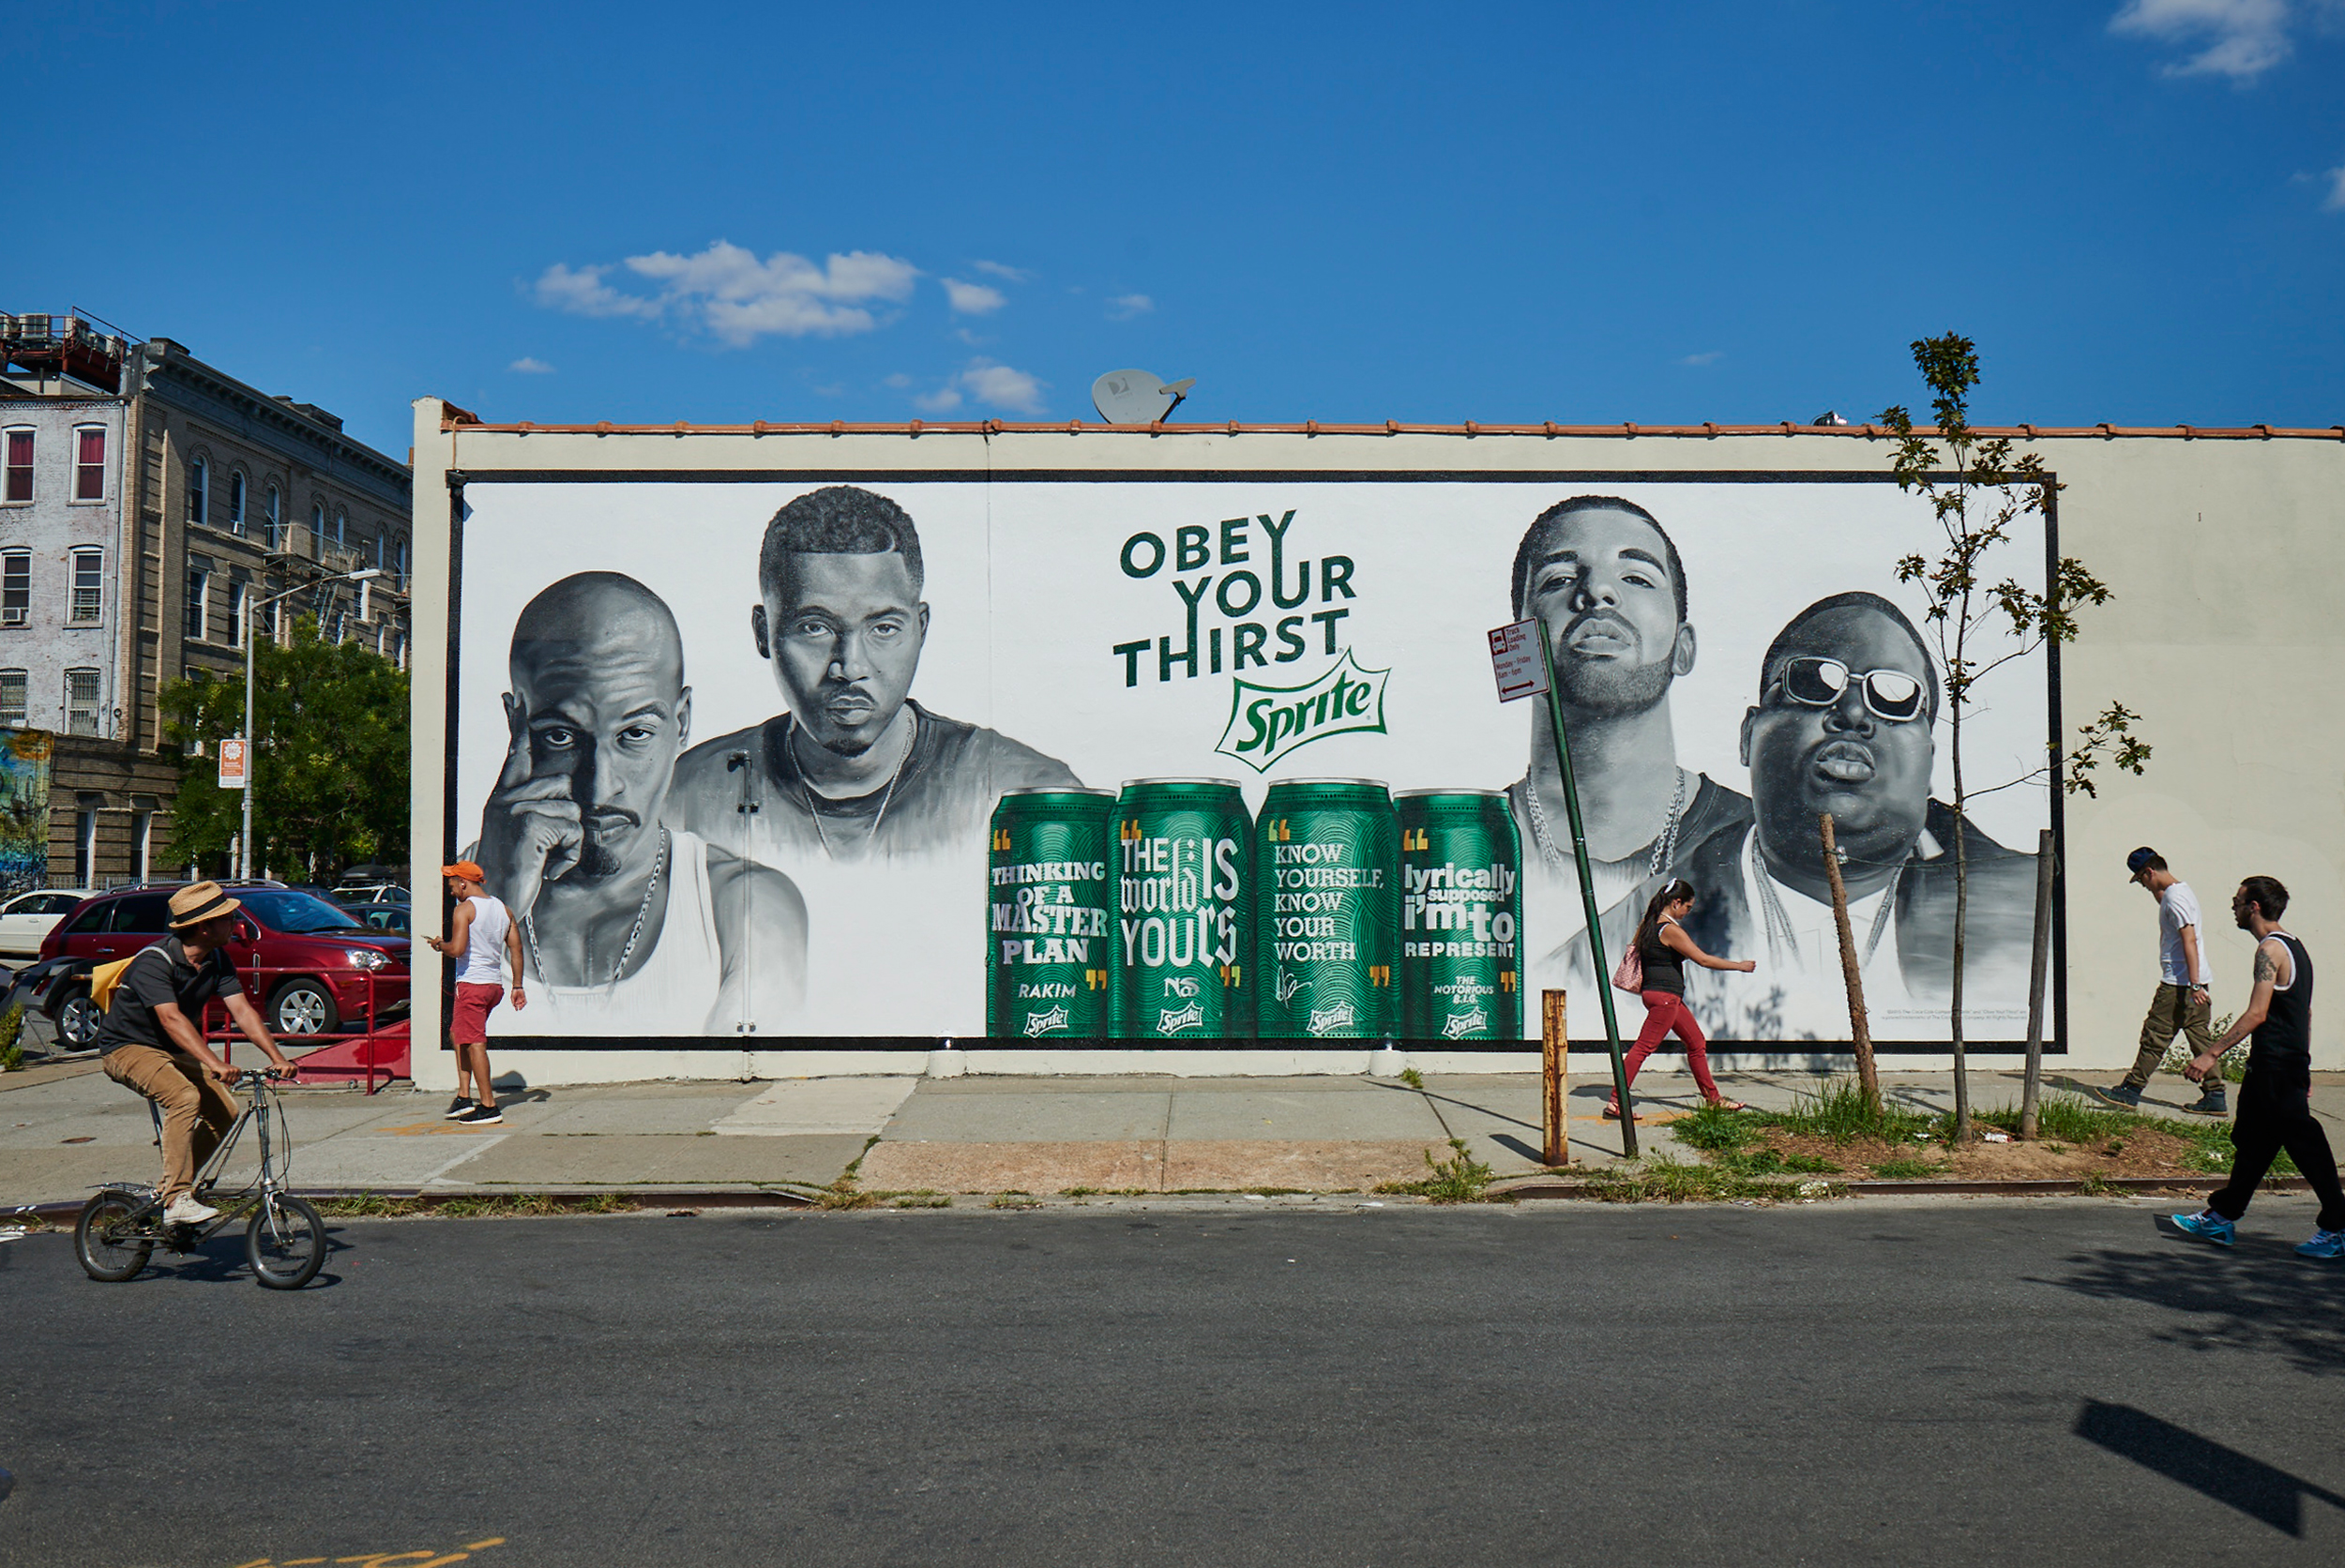 SPRITE / OBEY YOUR THIRST